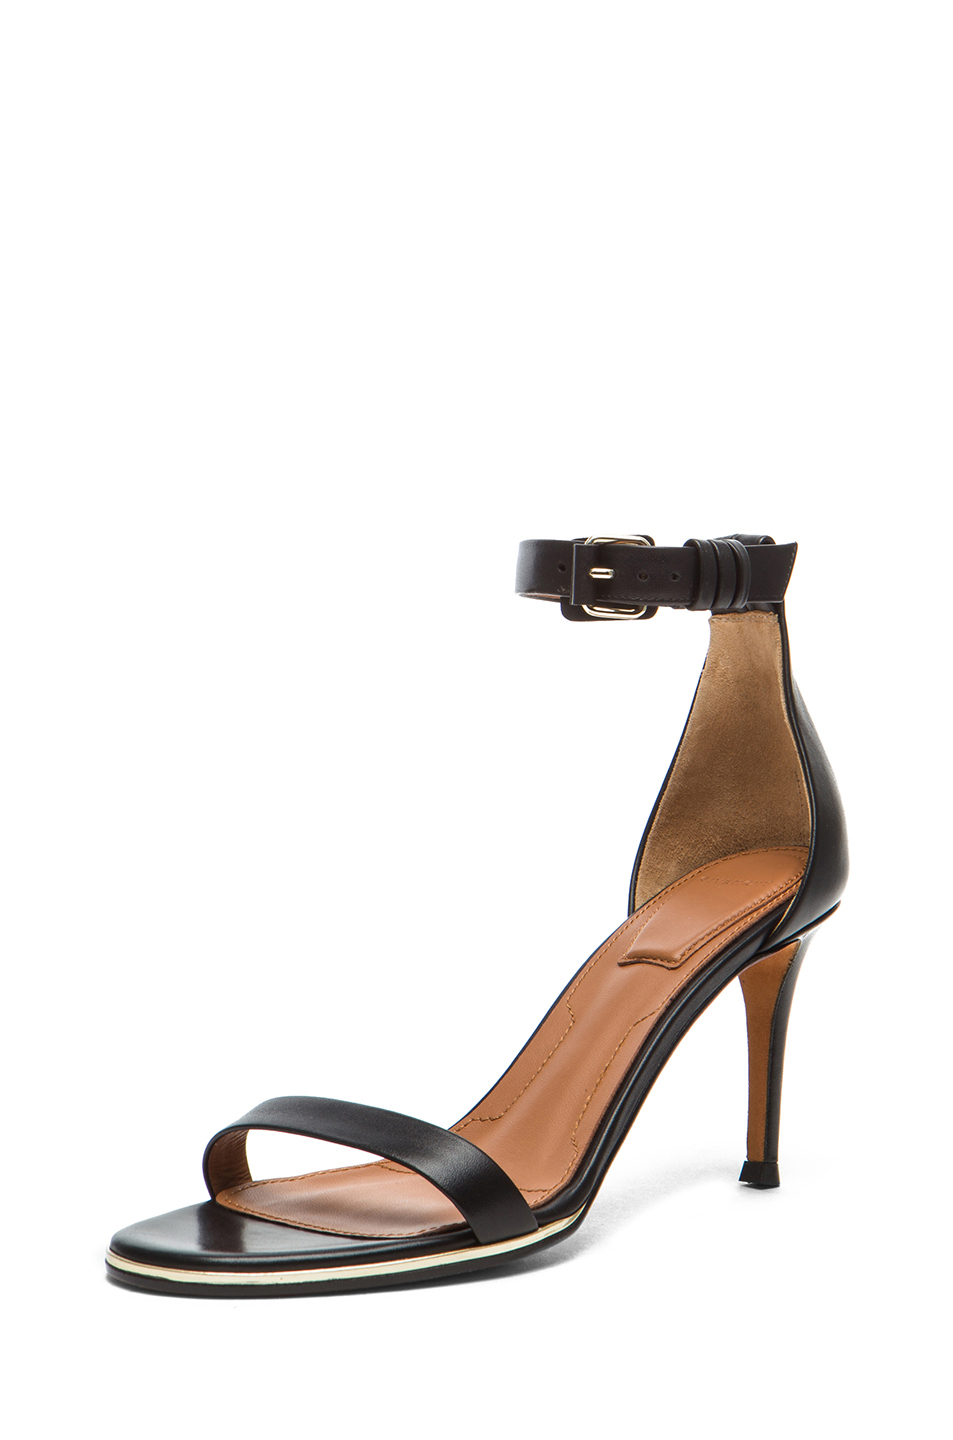 GIVENCHY | Nadia Calfskin Leather Sandals in Black